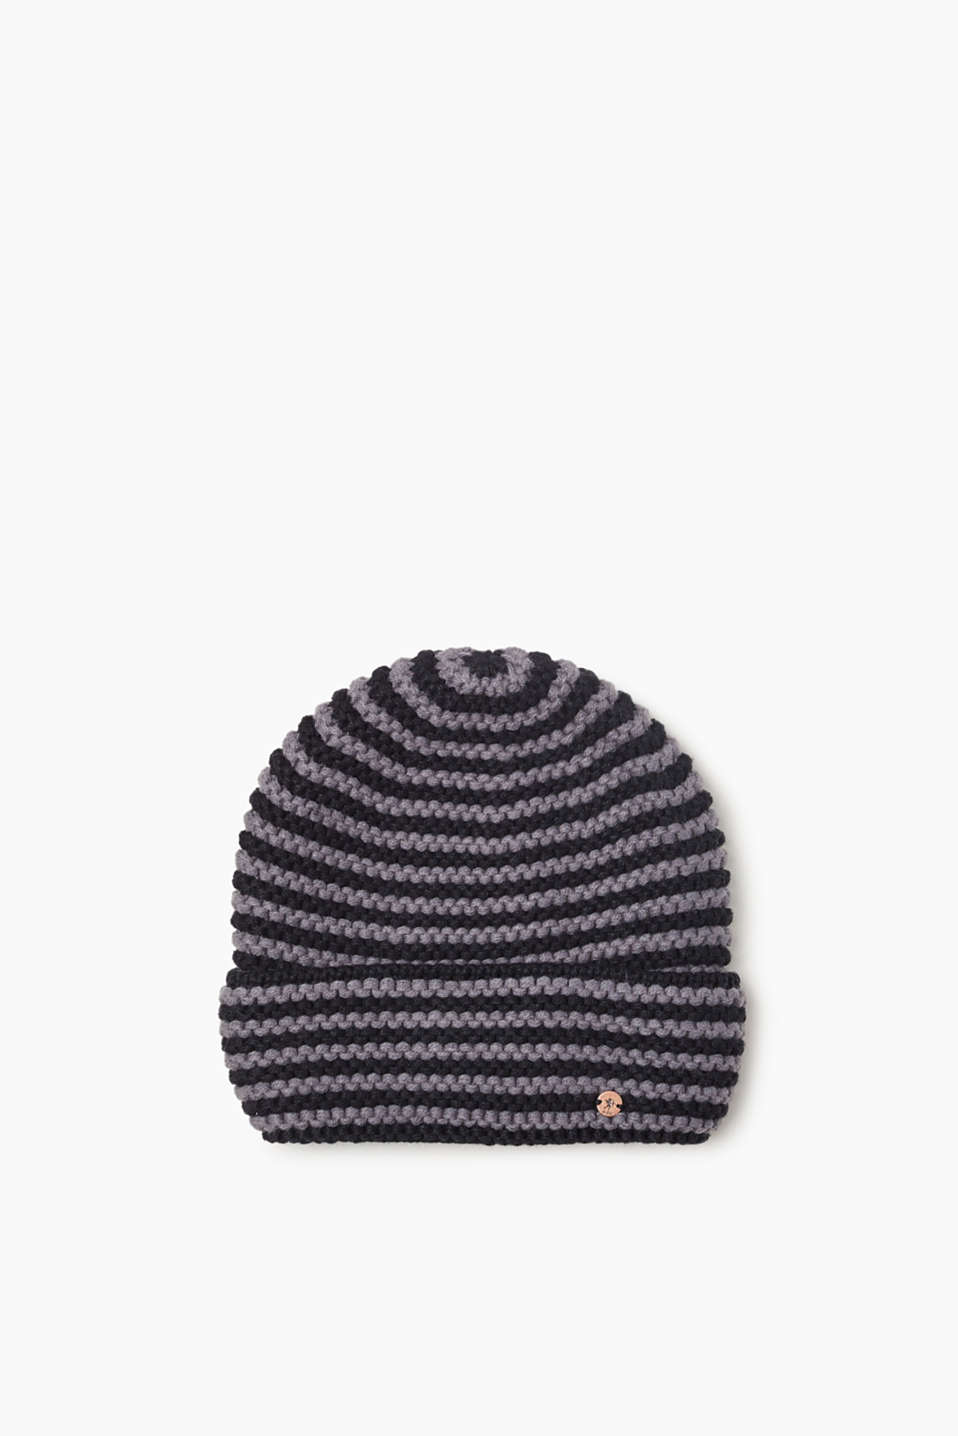 We love knitwear! The two-tone 3D knit yarn makes this beanie a favourite for the cold season.